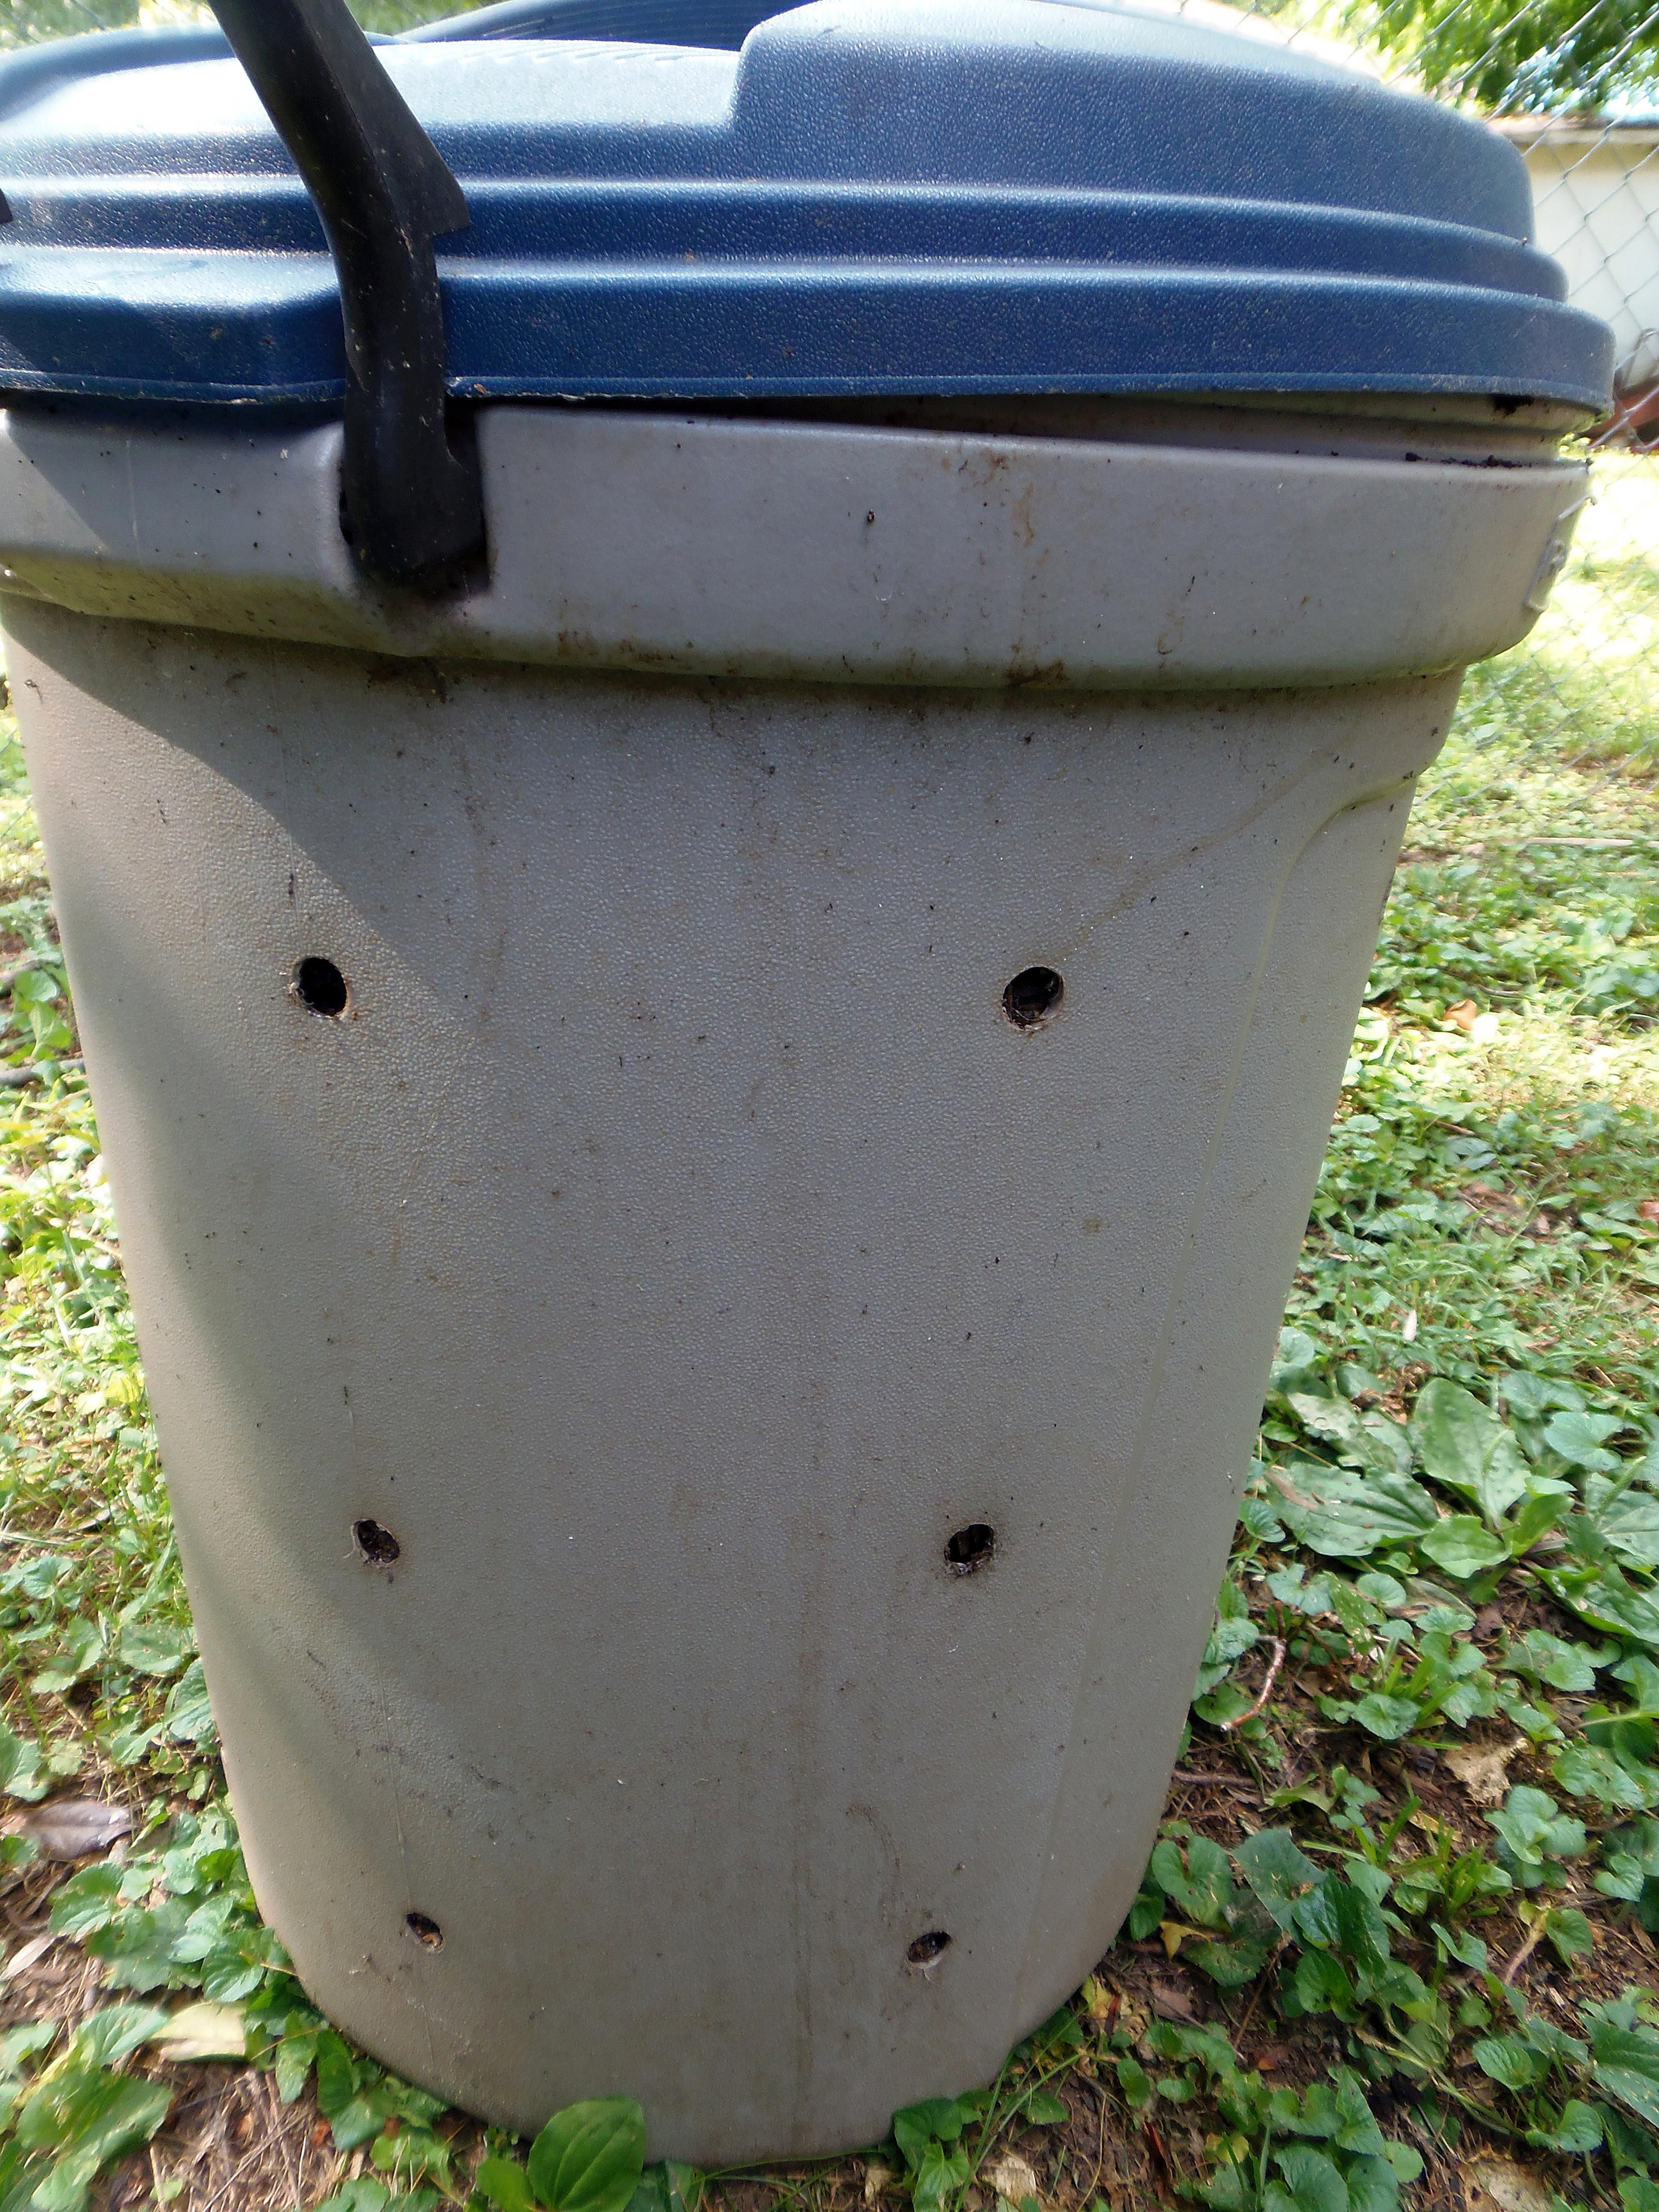 Turn A Spare Garbage Can Into Compost Bin In 30 Minutes Or Less